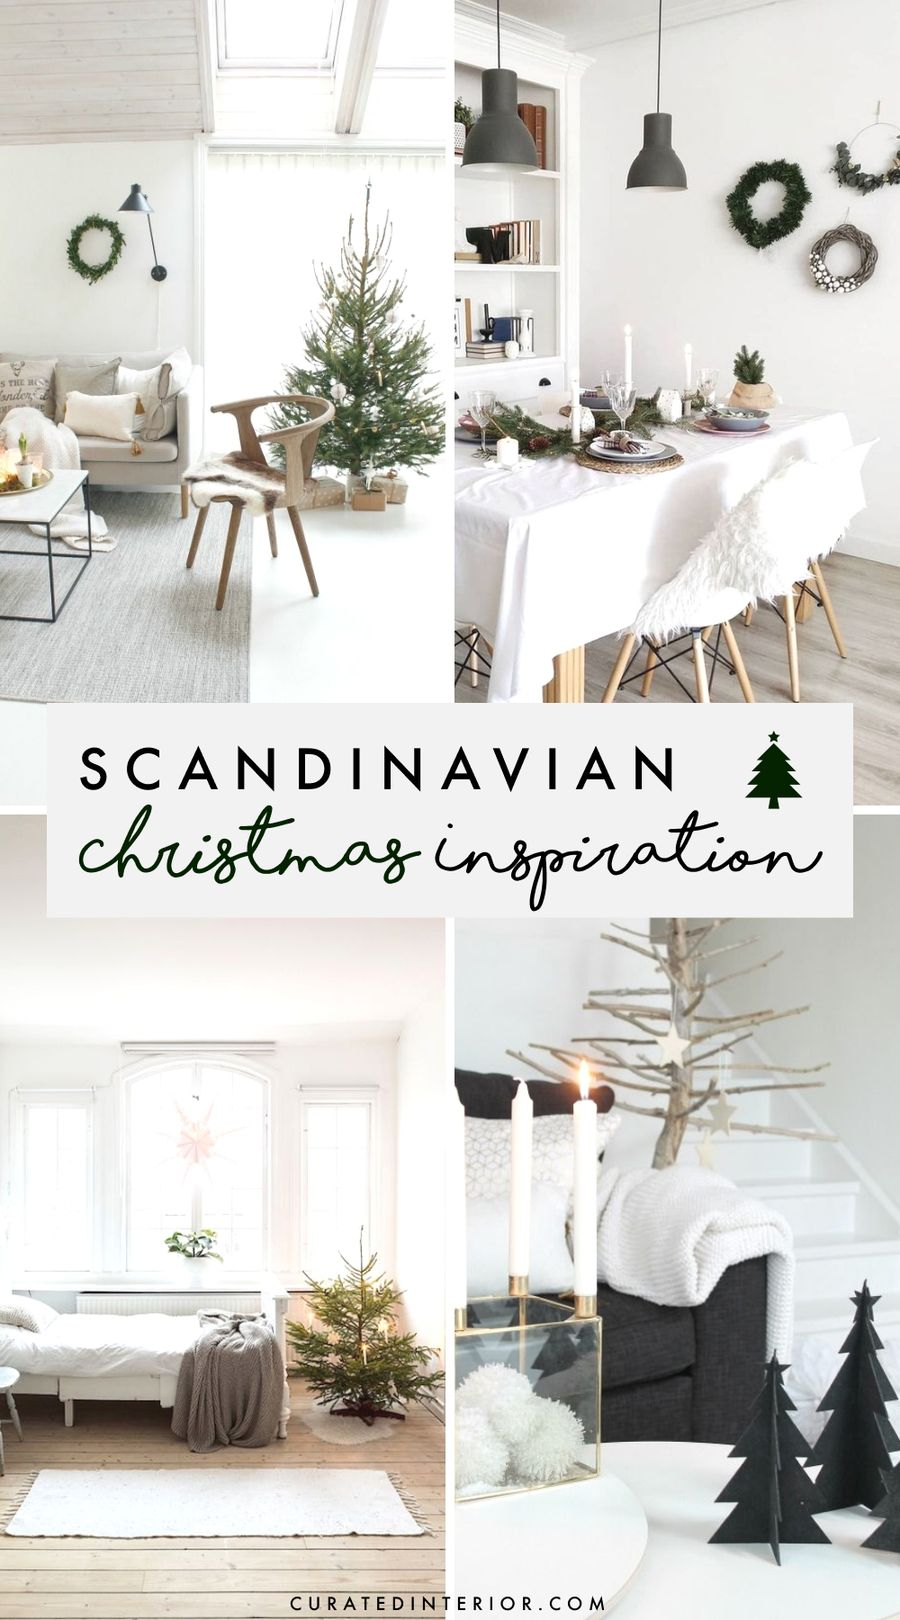 Scandinavian Christmas Decor Inspiration - the ultimate guide to decorating a Scandi style Christmas home this year!